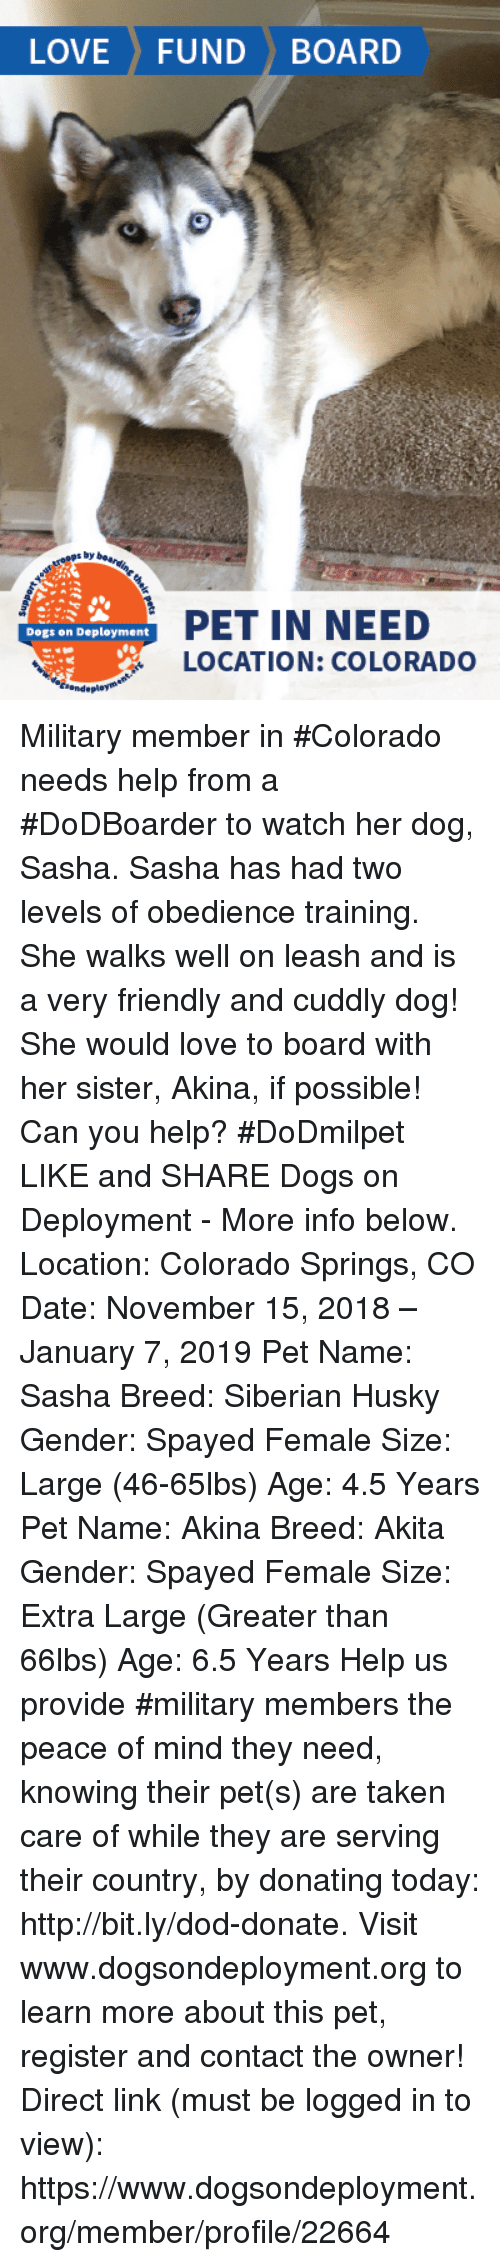 Dogs, Love, and Memes: LOVE FUND BOARD  s by  PET IN NEED  LOCATION: COLORADO  Dogs on Deployment Military member in #Colorado needs help from a #DoDBoarder to watch her dog, Sasha. Sasha has had two levels of obedience training. She walks well on leash and is a very friendly and cuddly dog! She would love to board with her sister, Akina, if possible! Can you help? #DoDmilpet   LIKE and SHARE Dogs on Deployment - More info below.   Location: Colorado Springs, CO Date: November 15, 2018 – January 7, 2019  Pet Name: Sasha Breed: Siberian Husky Gender: Spayed Female Size: Large (46-65lbs)  Age: 4.5 Years  Pet Name: Akina  Breed: Akita Gender: Spayed Female Size: Extra Large (Greater than 66lbs) Age: 6.5 Years  Help us provide #military members the peace of mind they need, knowing their pet(s) are taken care of while they are serving their country, by donating today: http://bit.ly/dod-donate.   Visit www.dogsondeployment.org to learn more about this pet, register and contact the owner!  Direct link (must be logged in to view): https://www.dogsondeployment.org/member/profile/22664